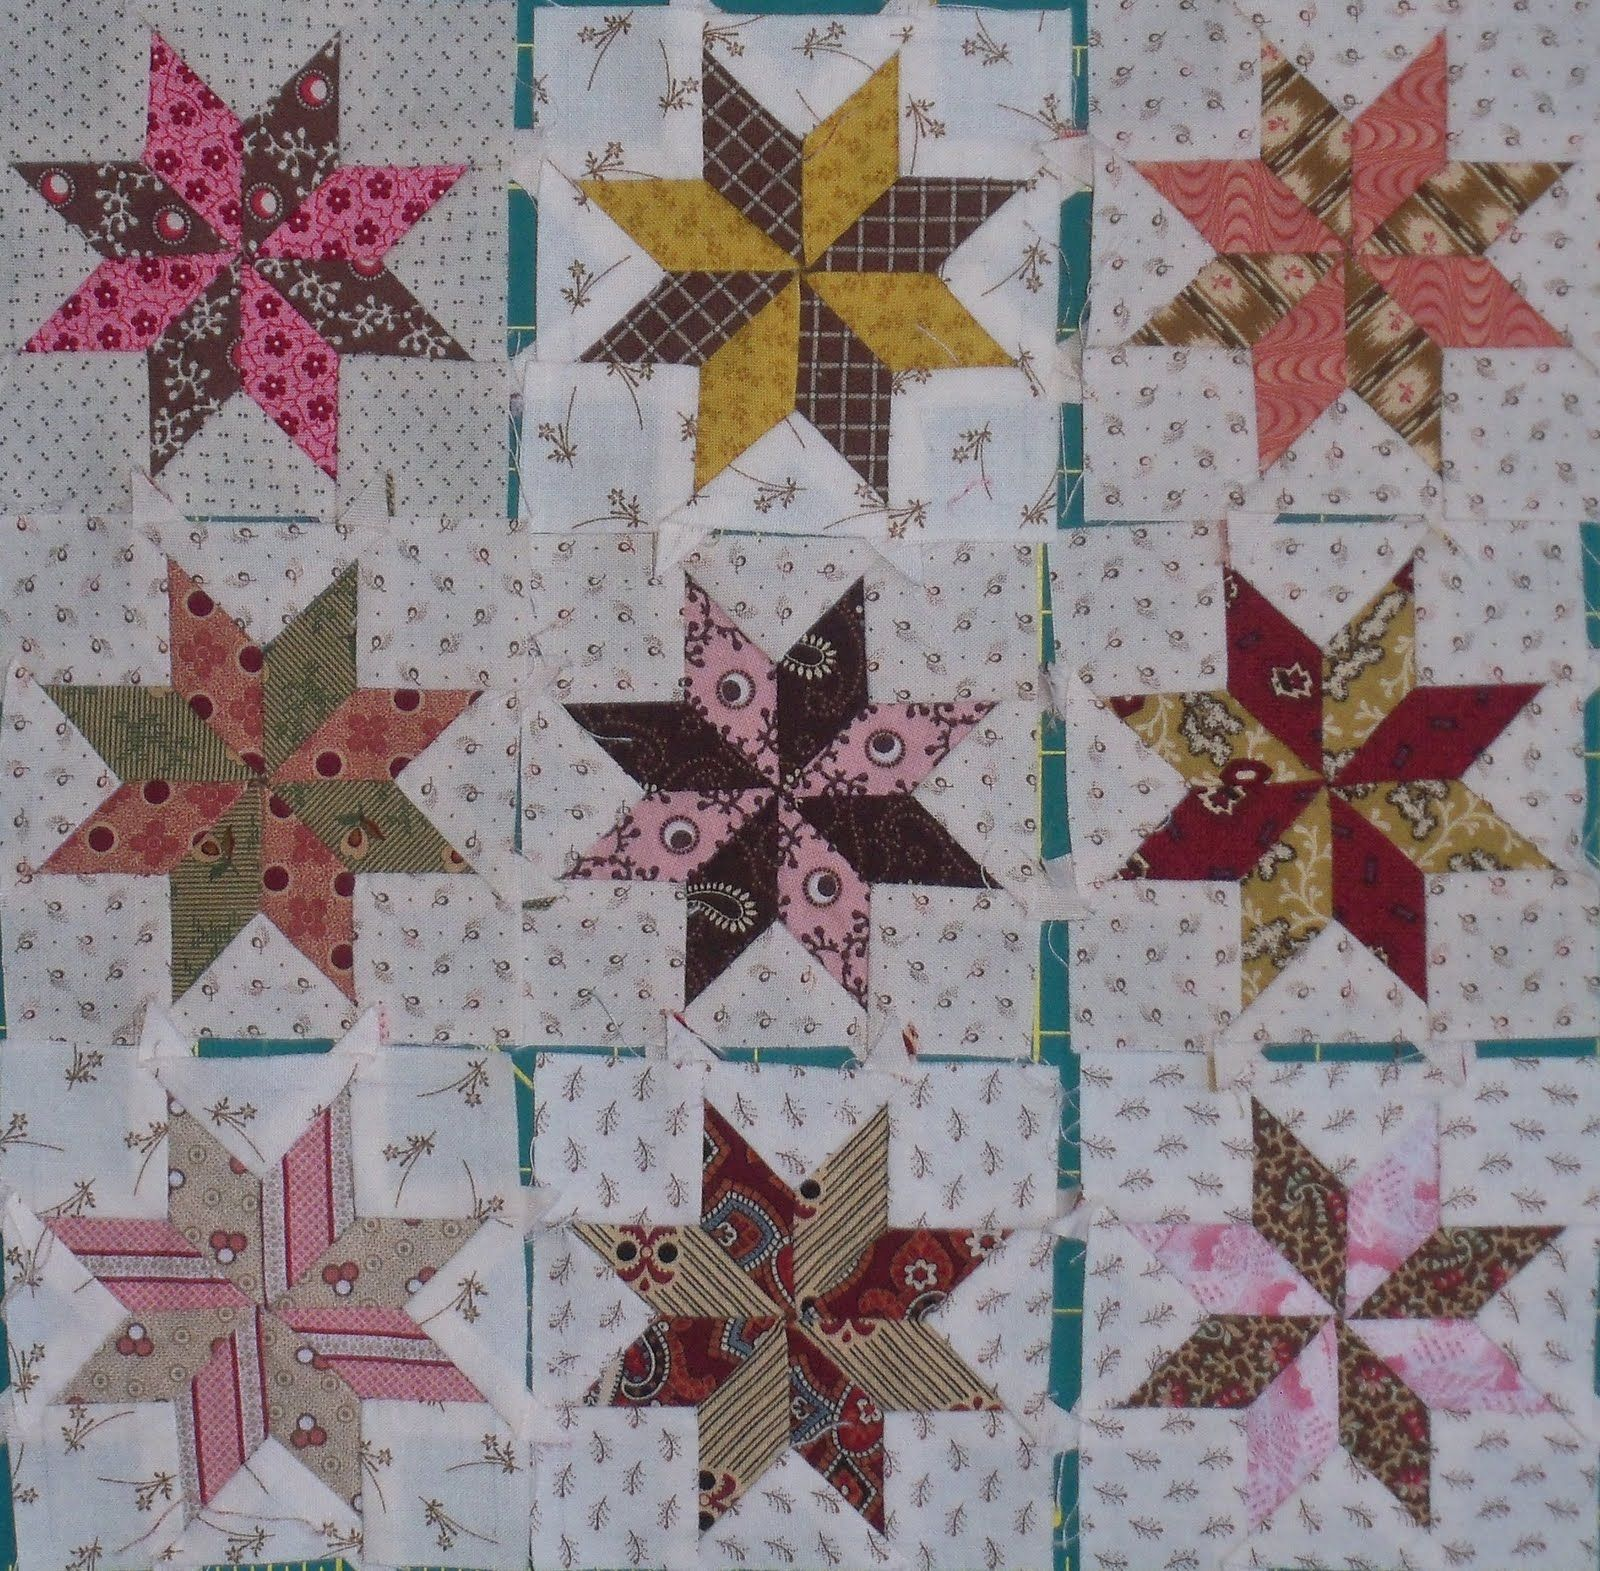 Repro Quilt Lover | Lots of Stars | Pinterest | Quilt and Search : repro quilt lover - Adamdwight.com